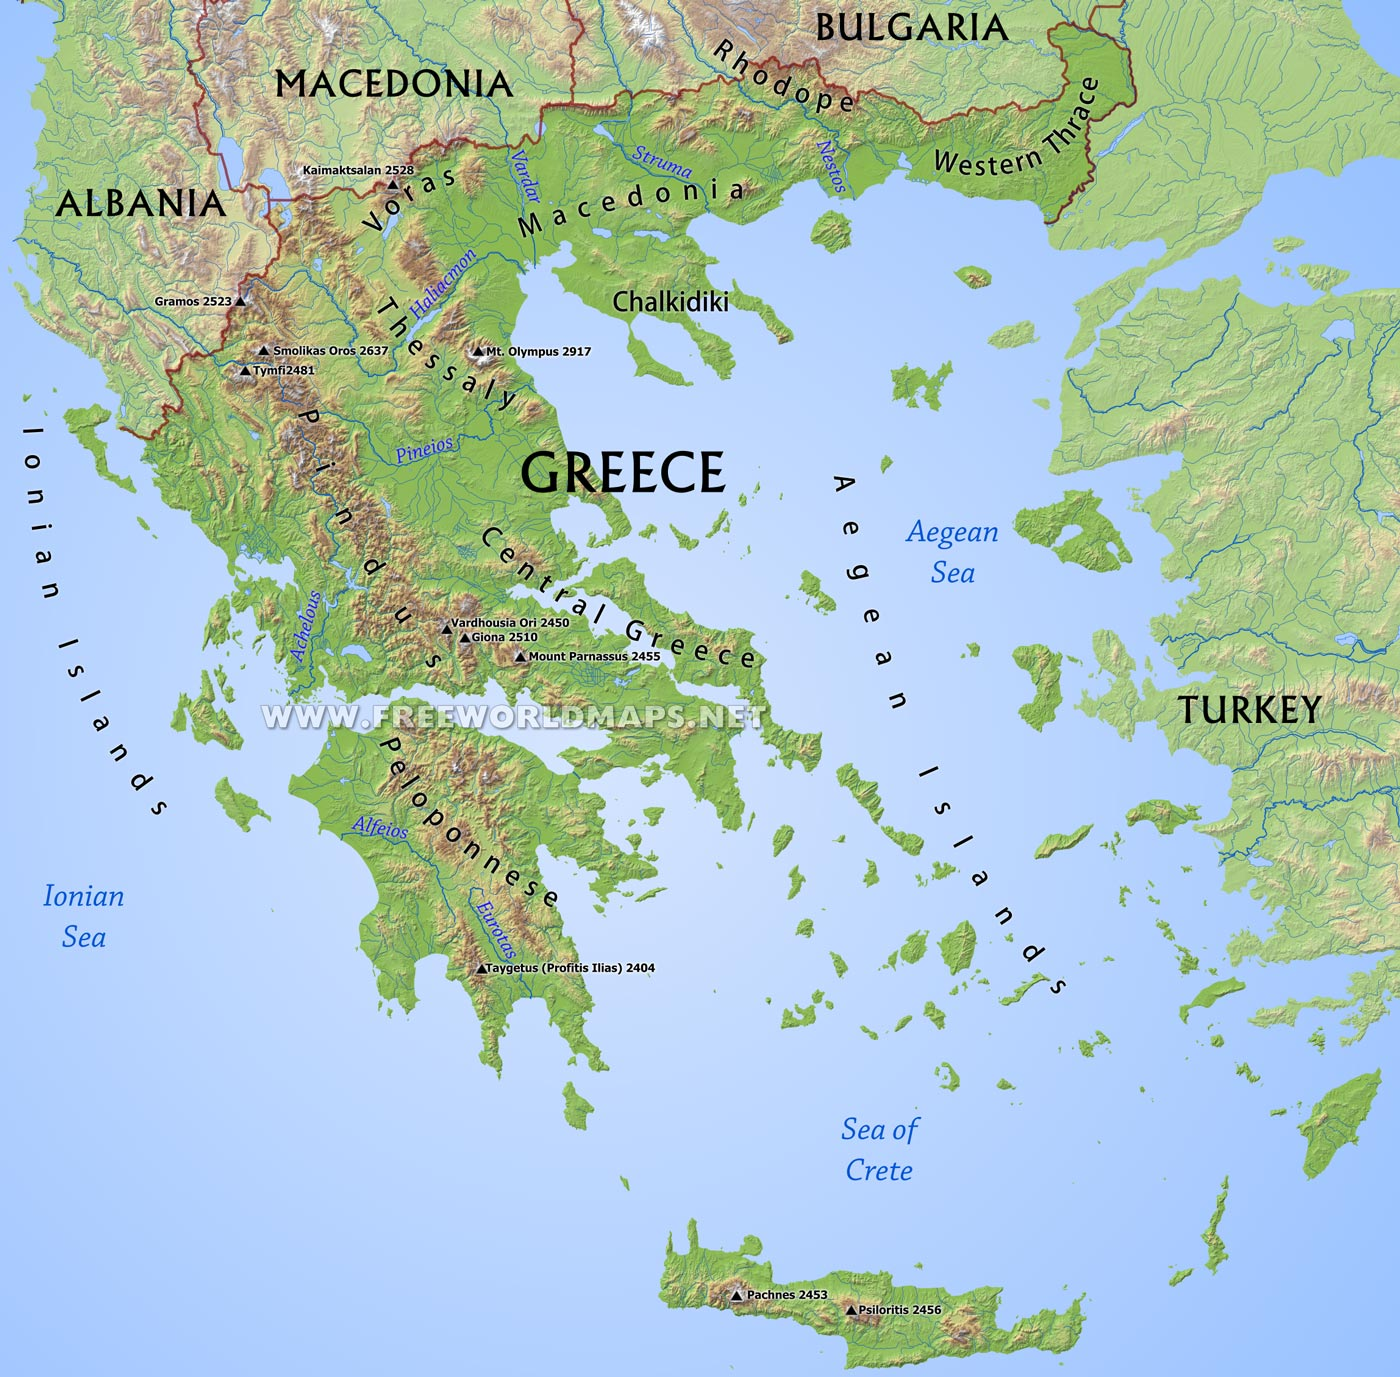 Greece'S Landforms And Bodies Of Water 57